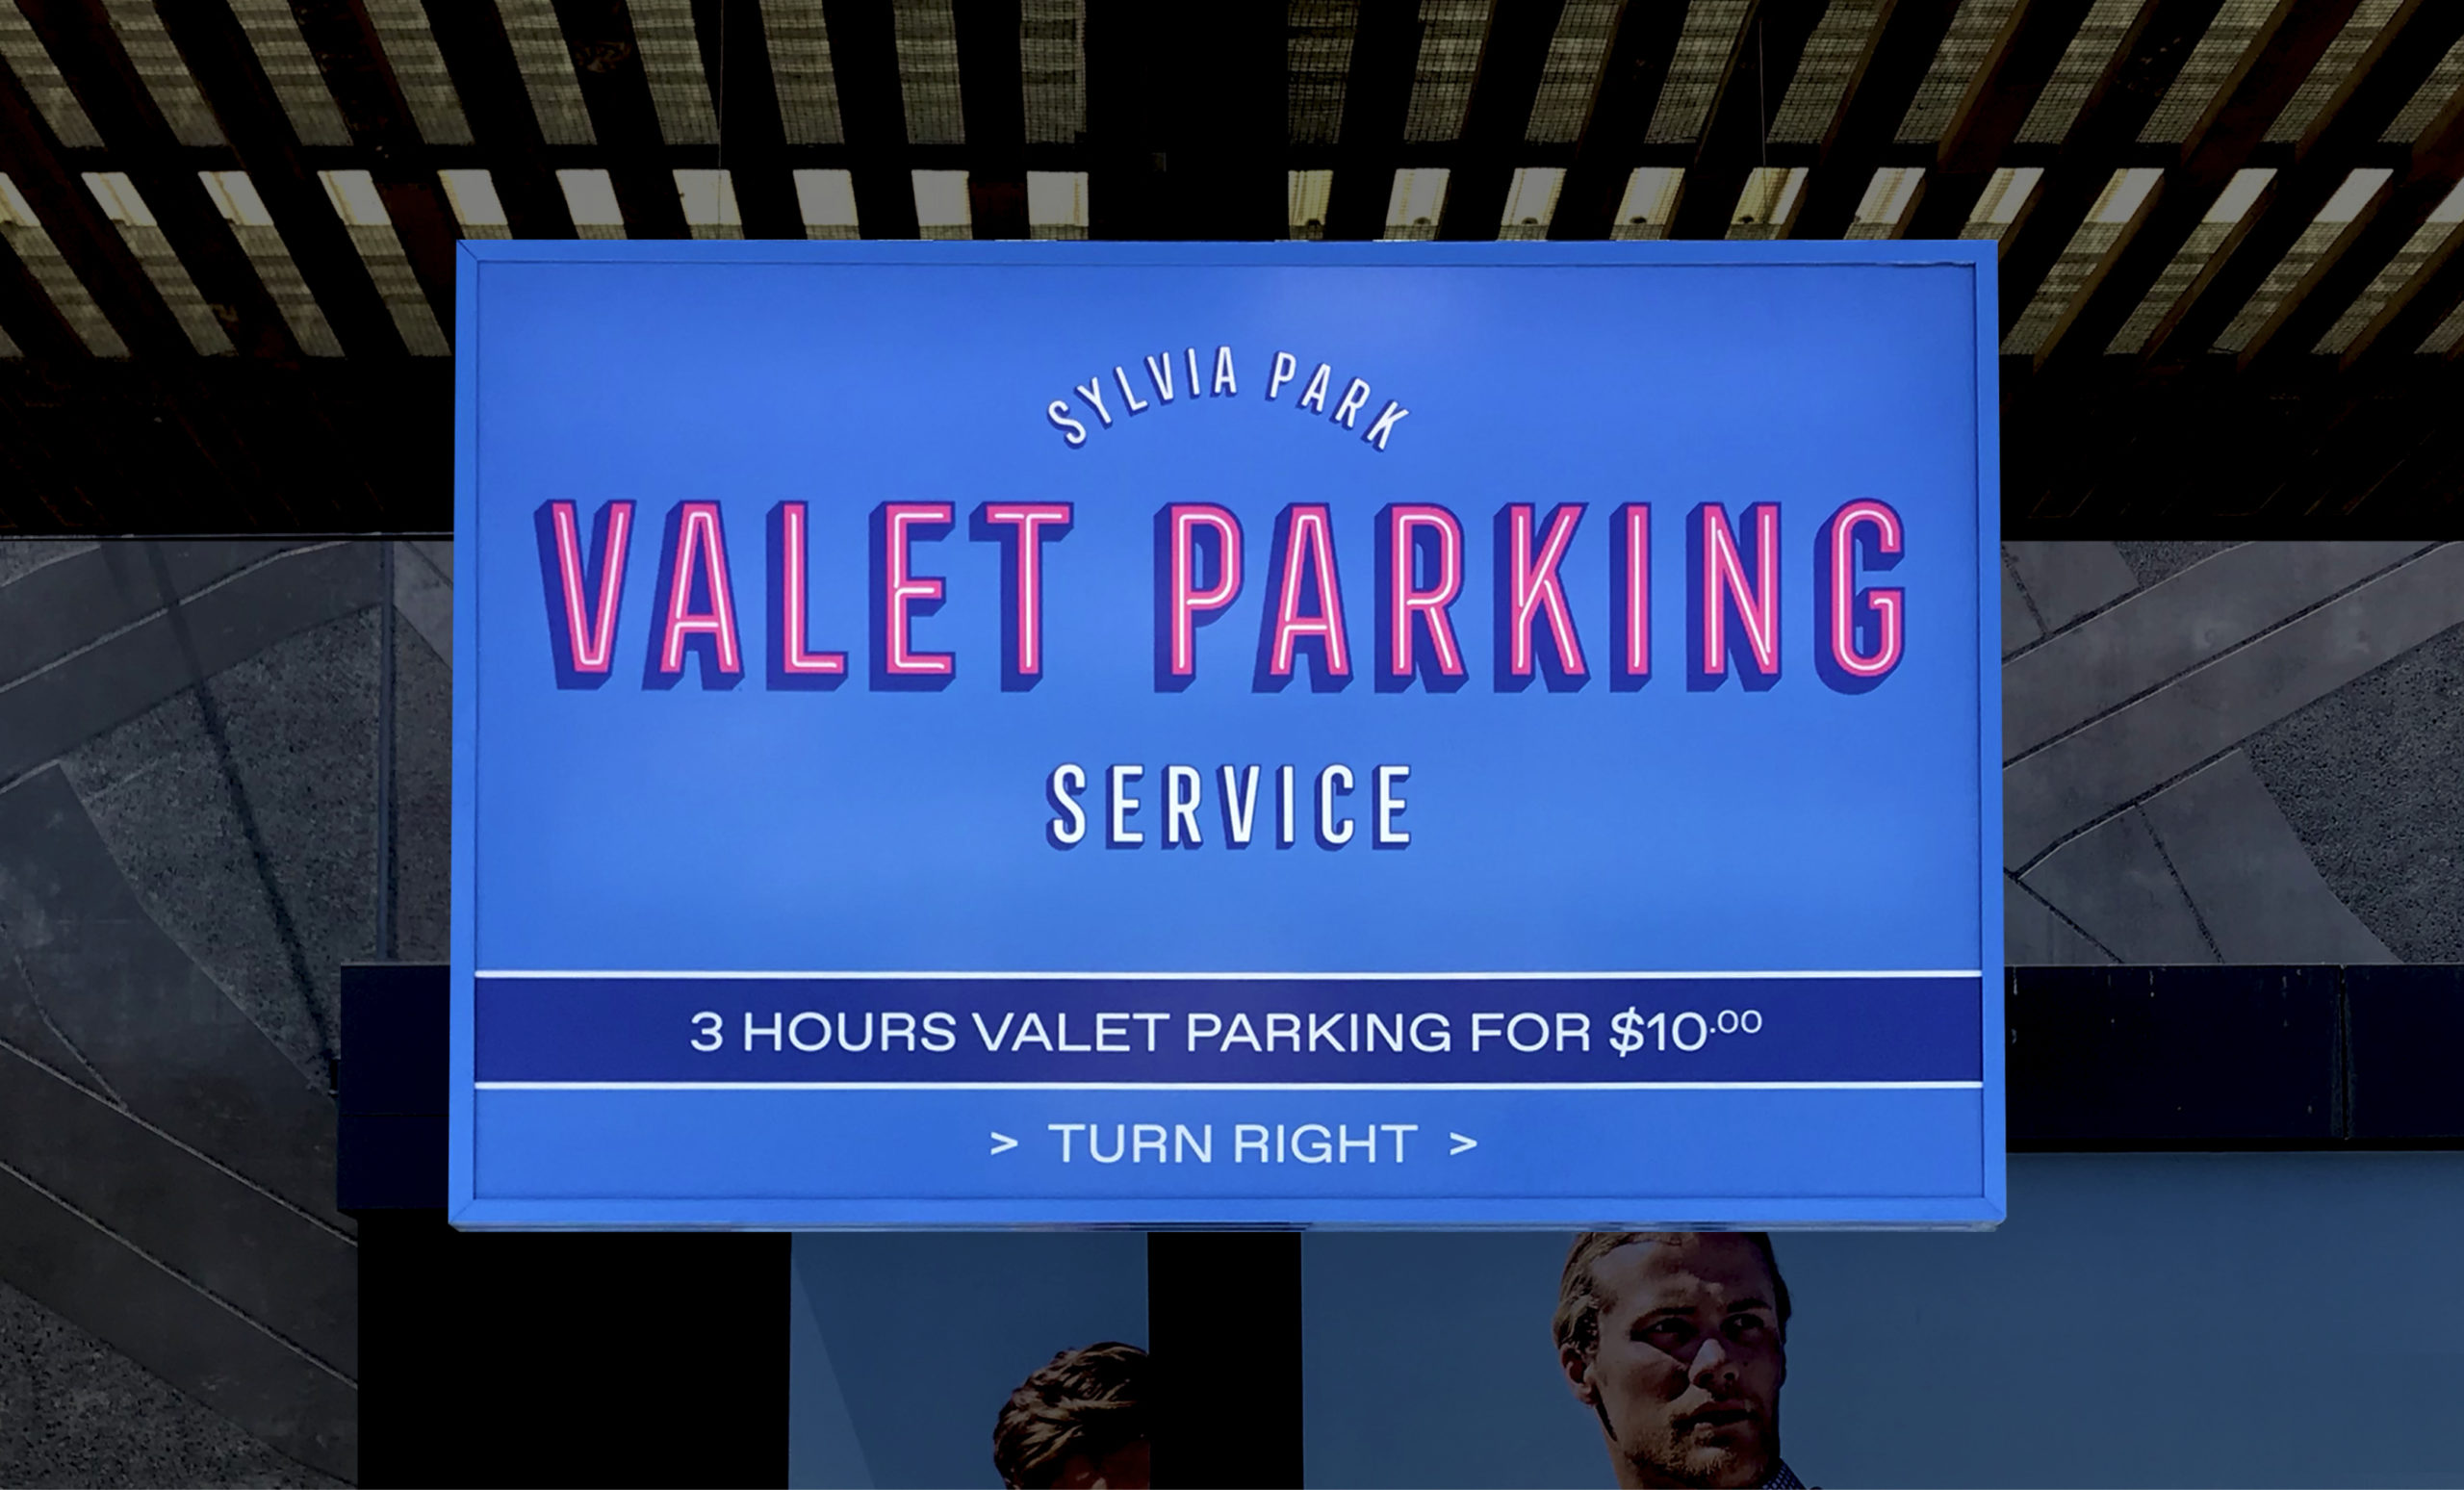 Sign featuring retro themed identity for Sylvia Park Valet Parking Experience featuring neon style lettering